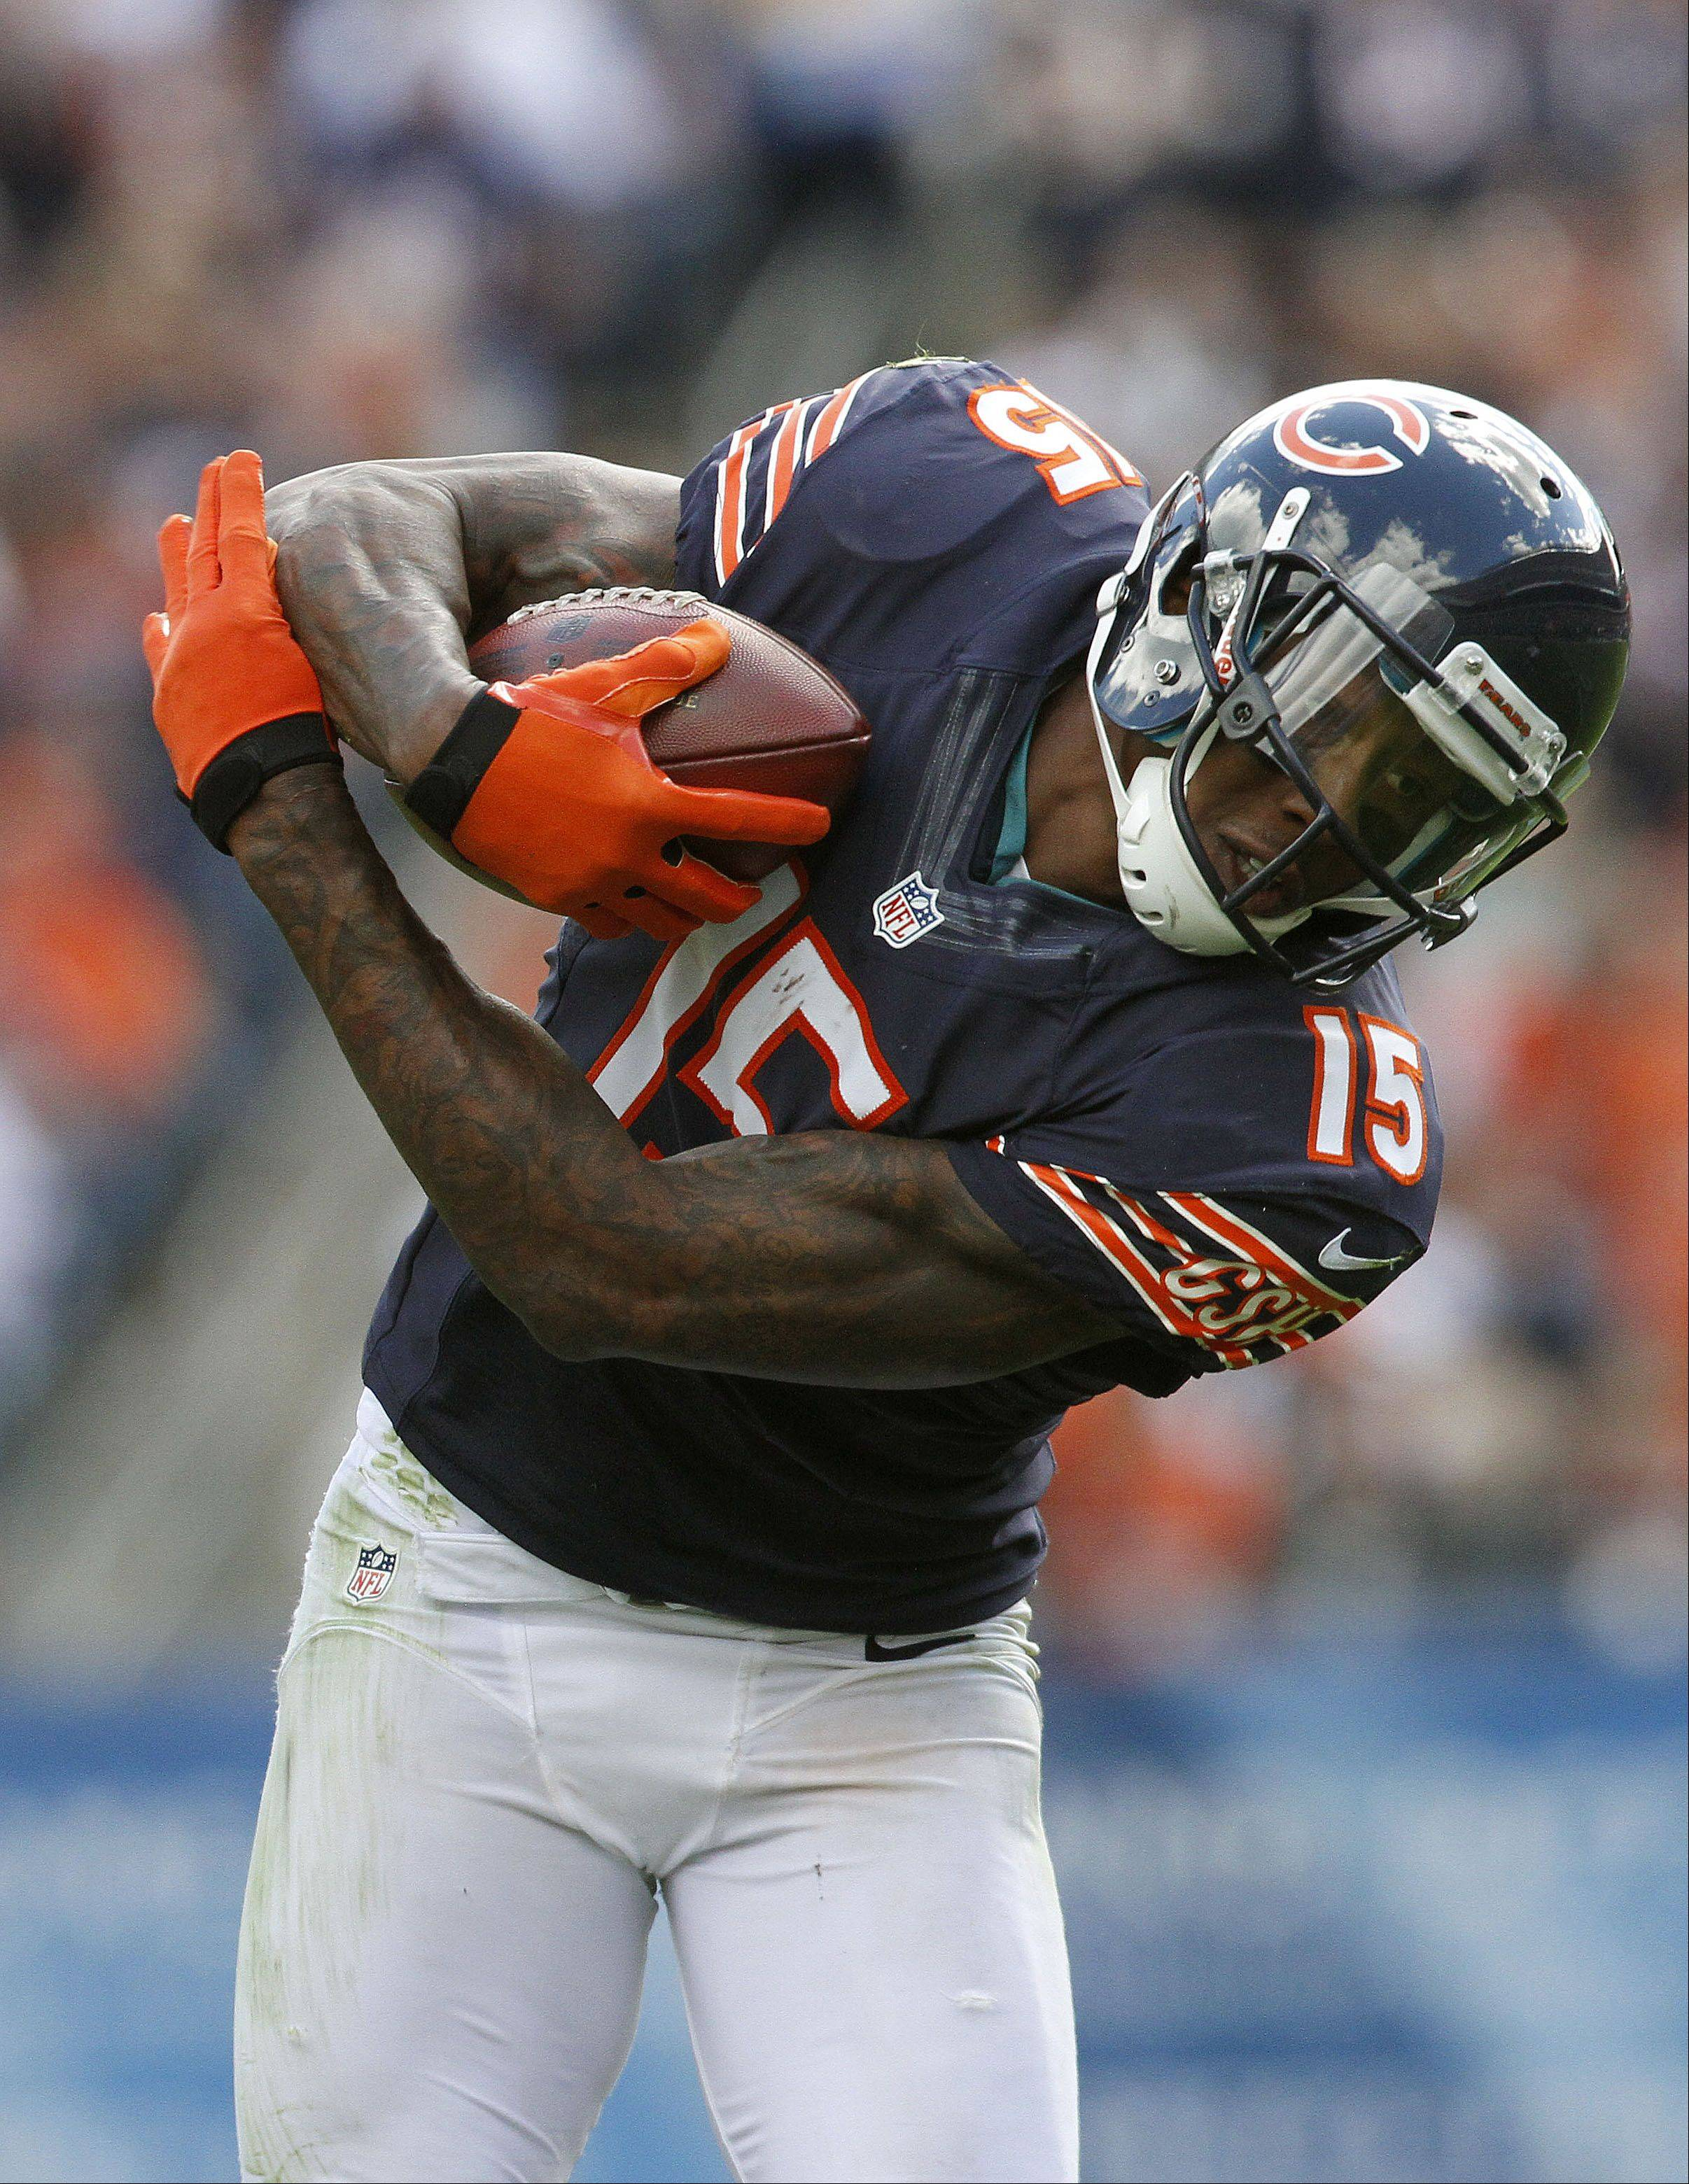 Steve Lundy/slundy@dailyherald.com ¬ Chicago Bears wide receiver Brandon Marshall runs after a catch in the first half against the St. Louis Rams Sunday at Soldier Field in Chicago.